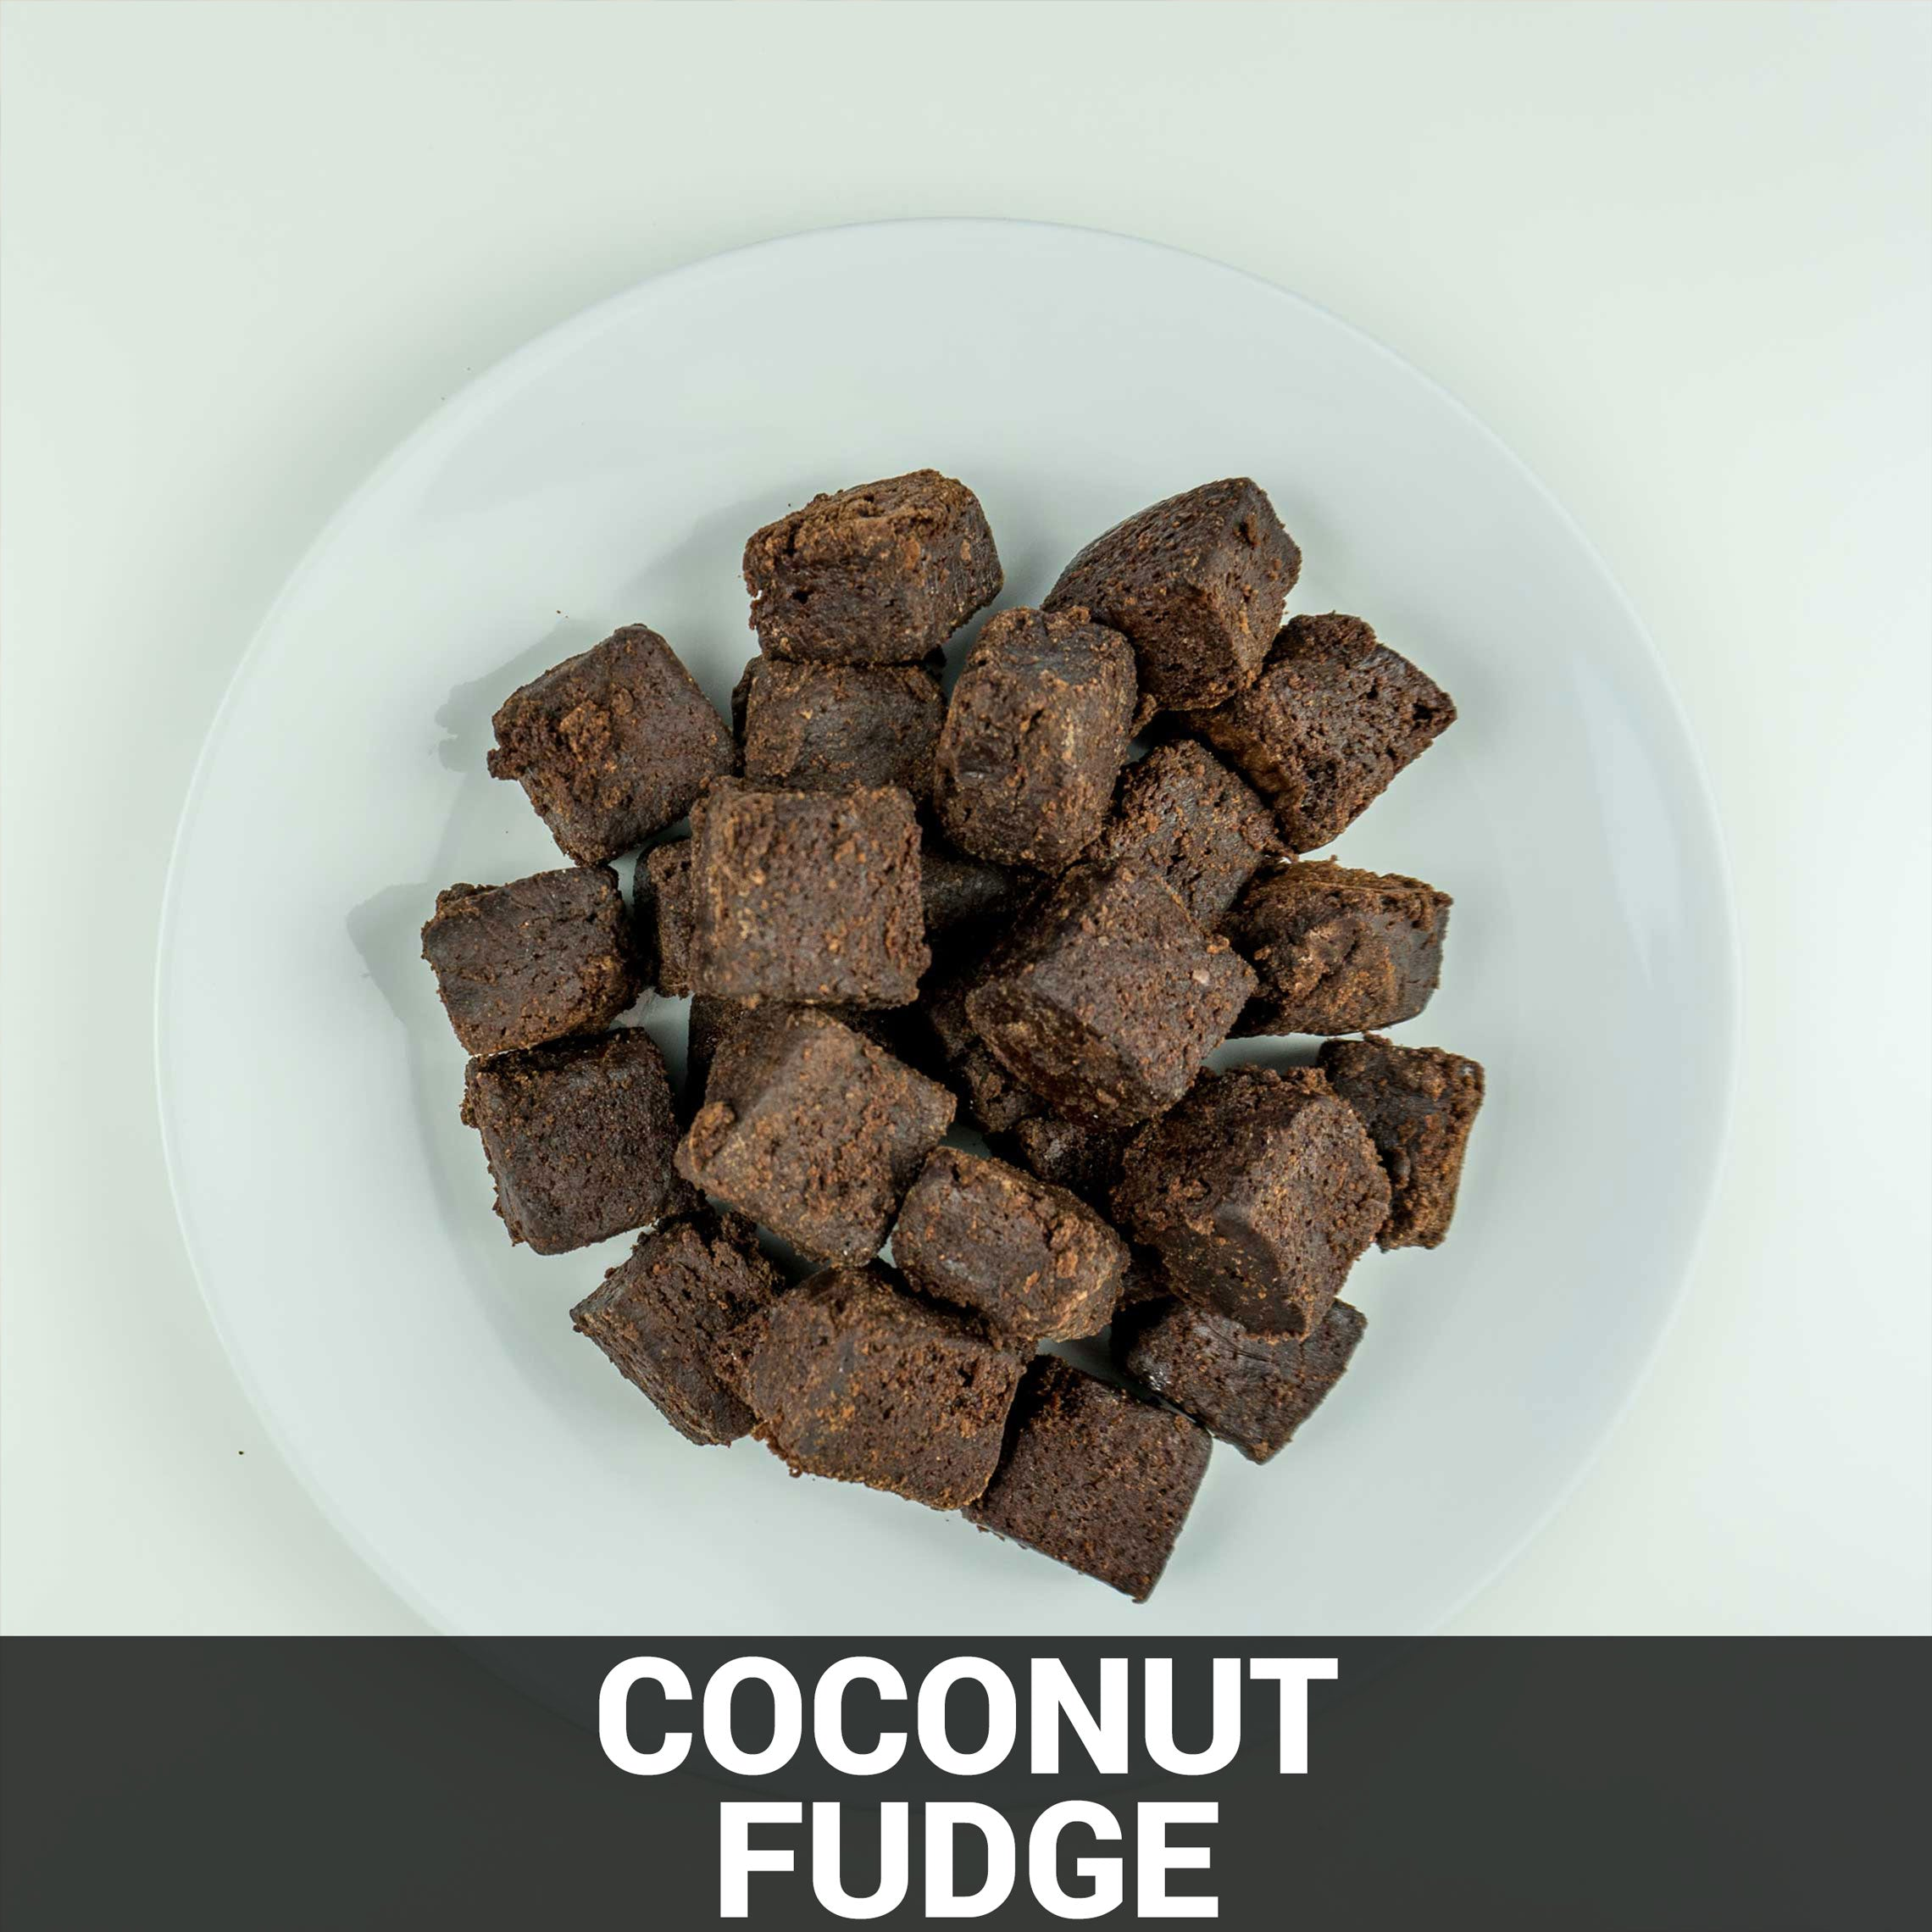 Coconut Fudge Recipe - Foods Alive